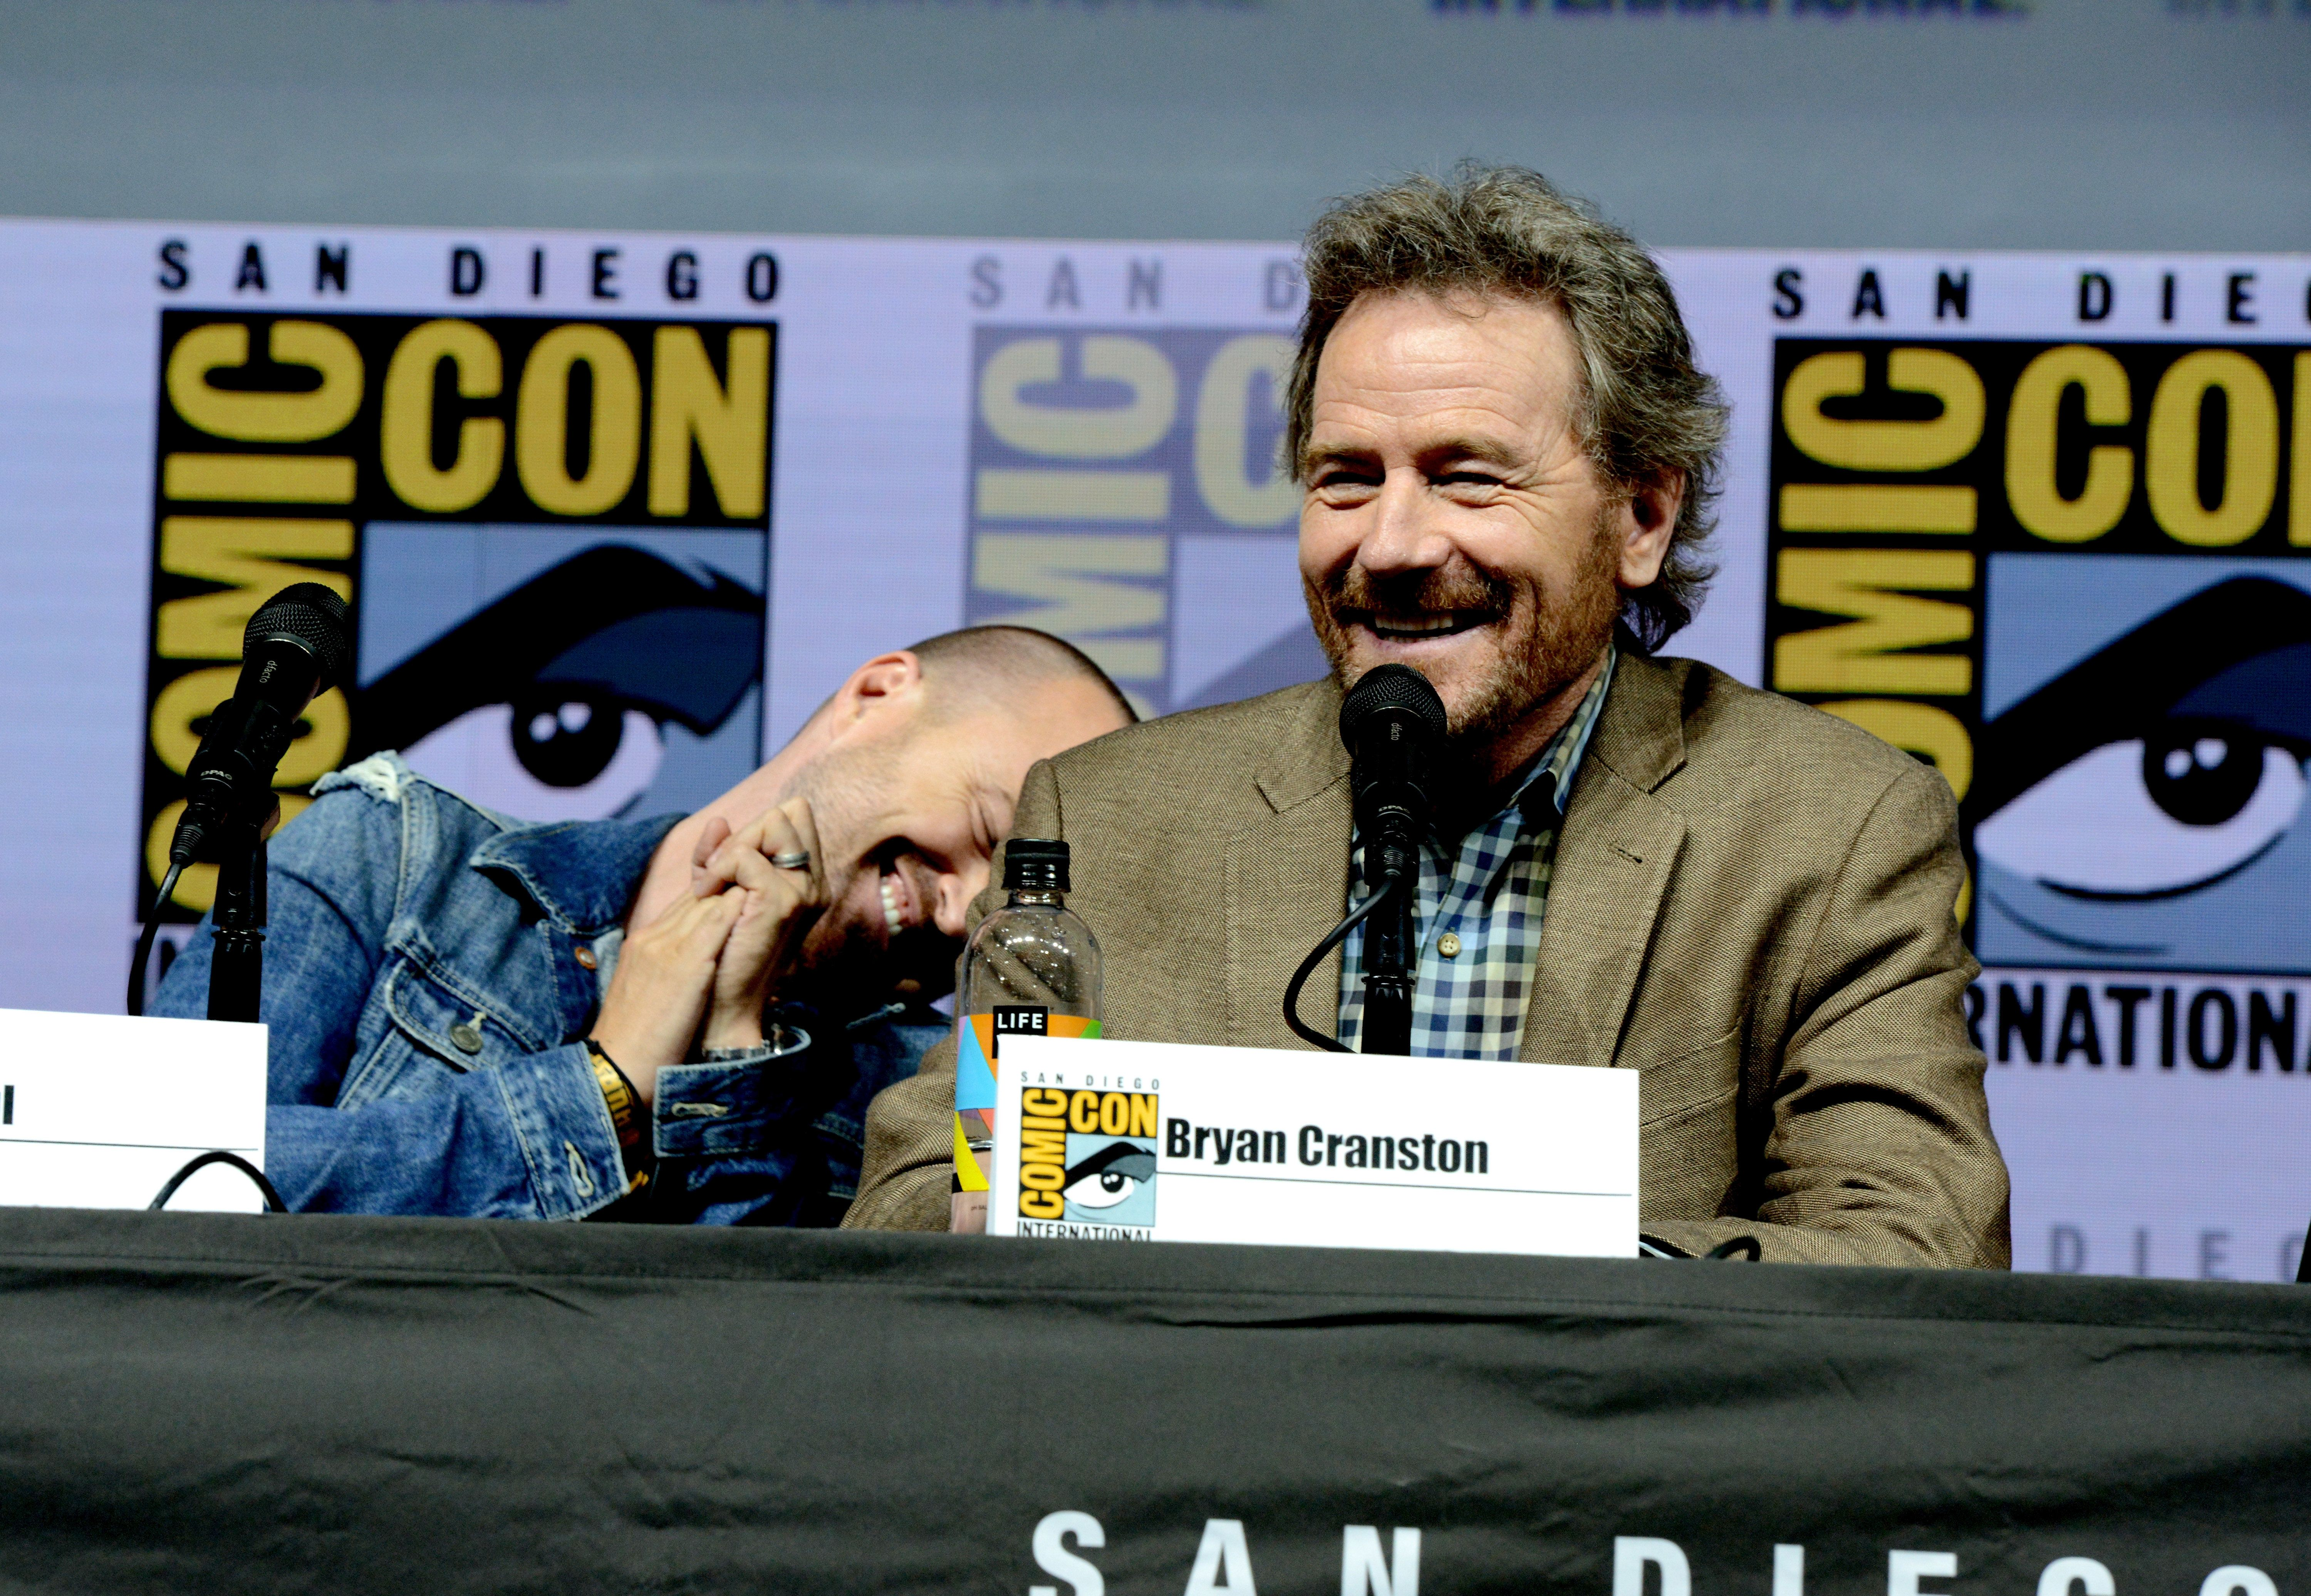 Walter White may appear in 'Better Call Saul,' creator says